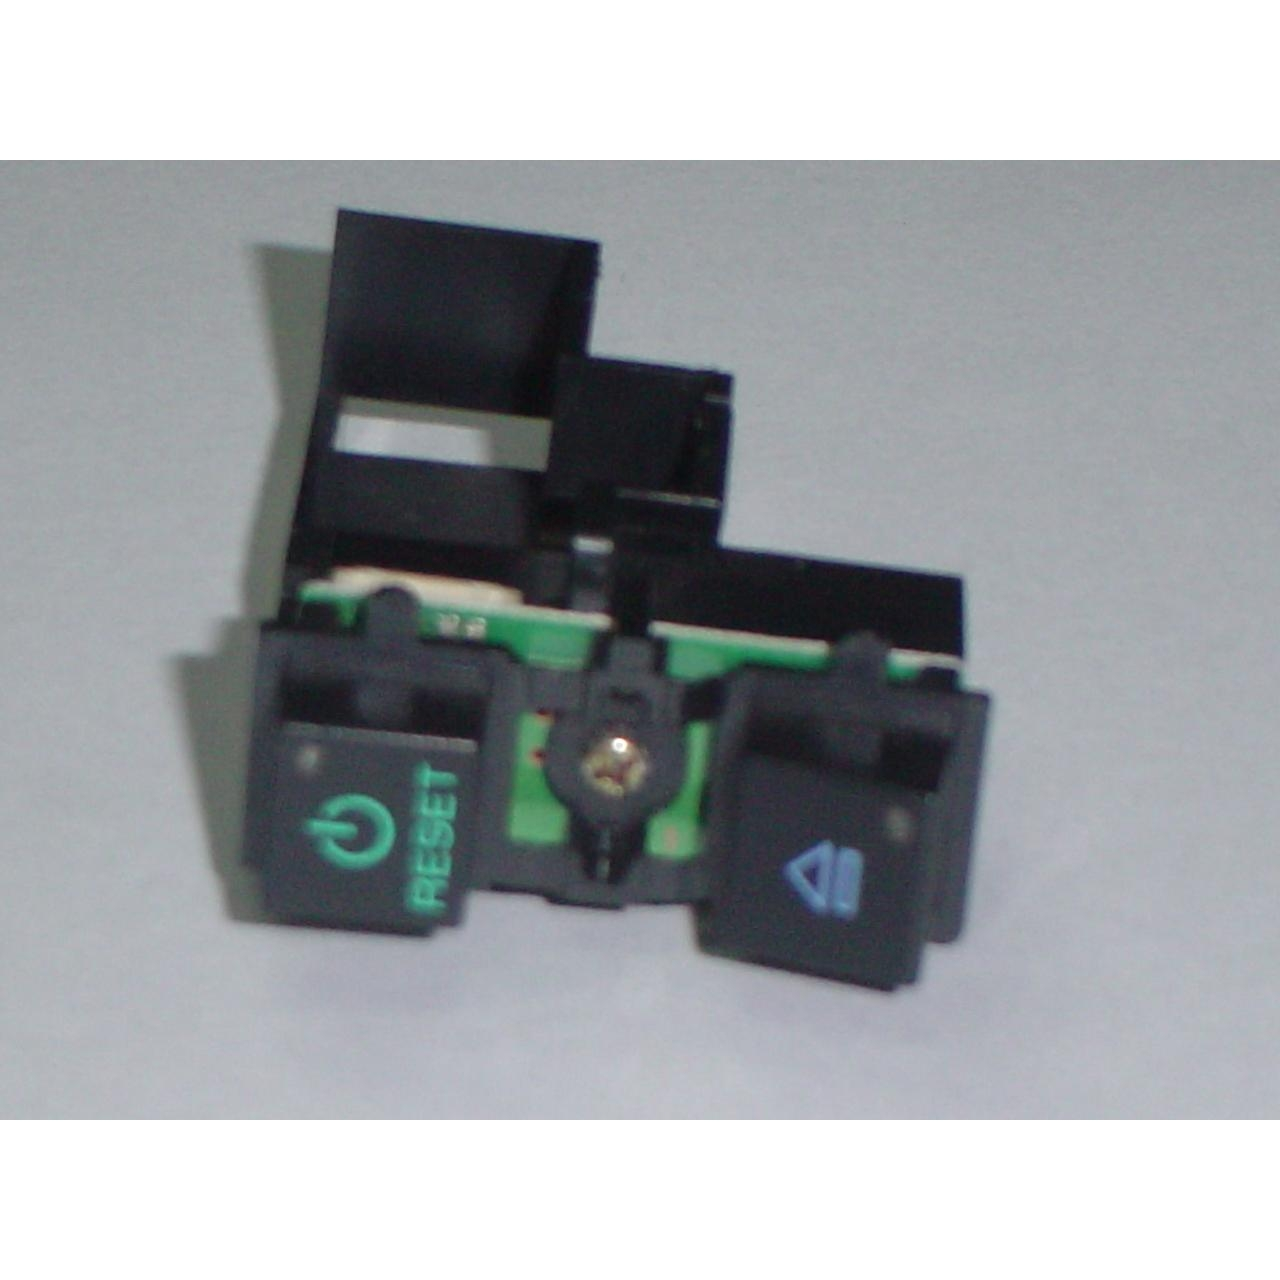 PS2 console switch,psp lens,xbox lens,memory card